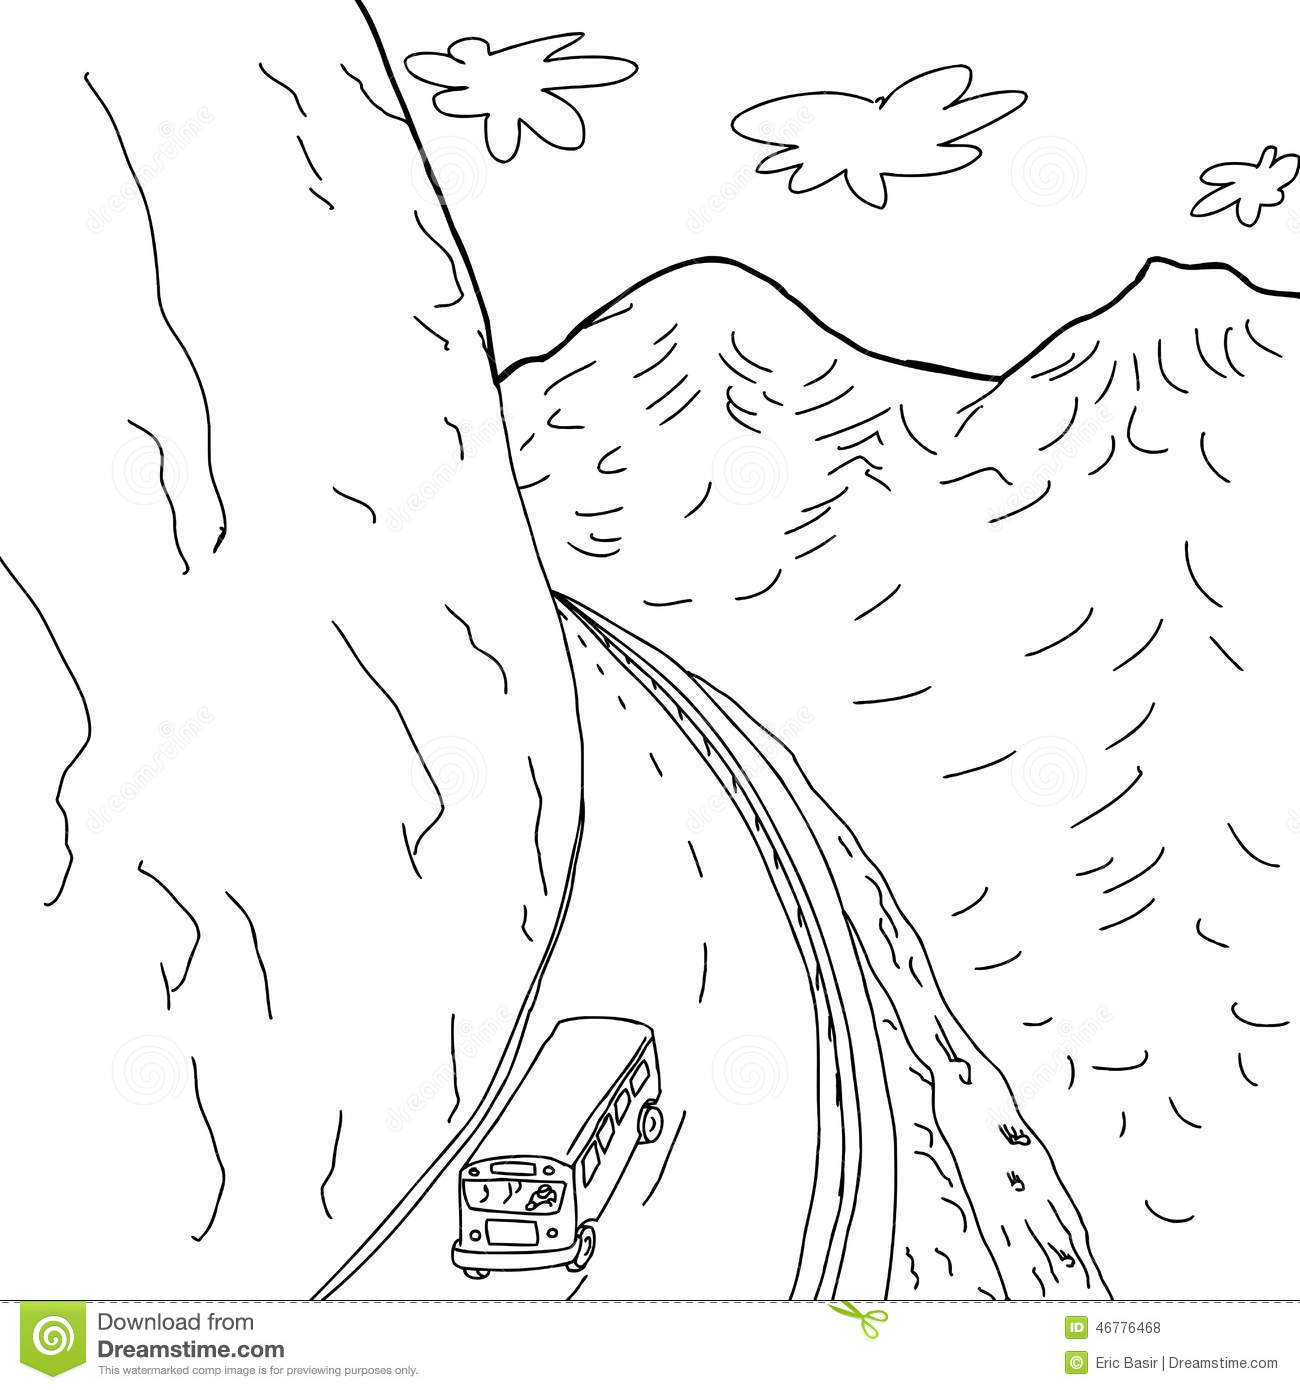 Outline Of Bus On Mountain Road Stock Vector - Illustration of ...